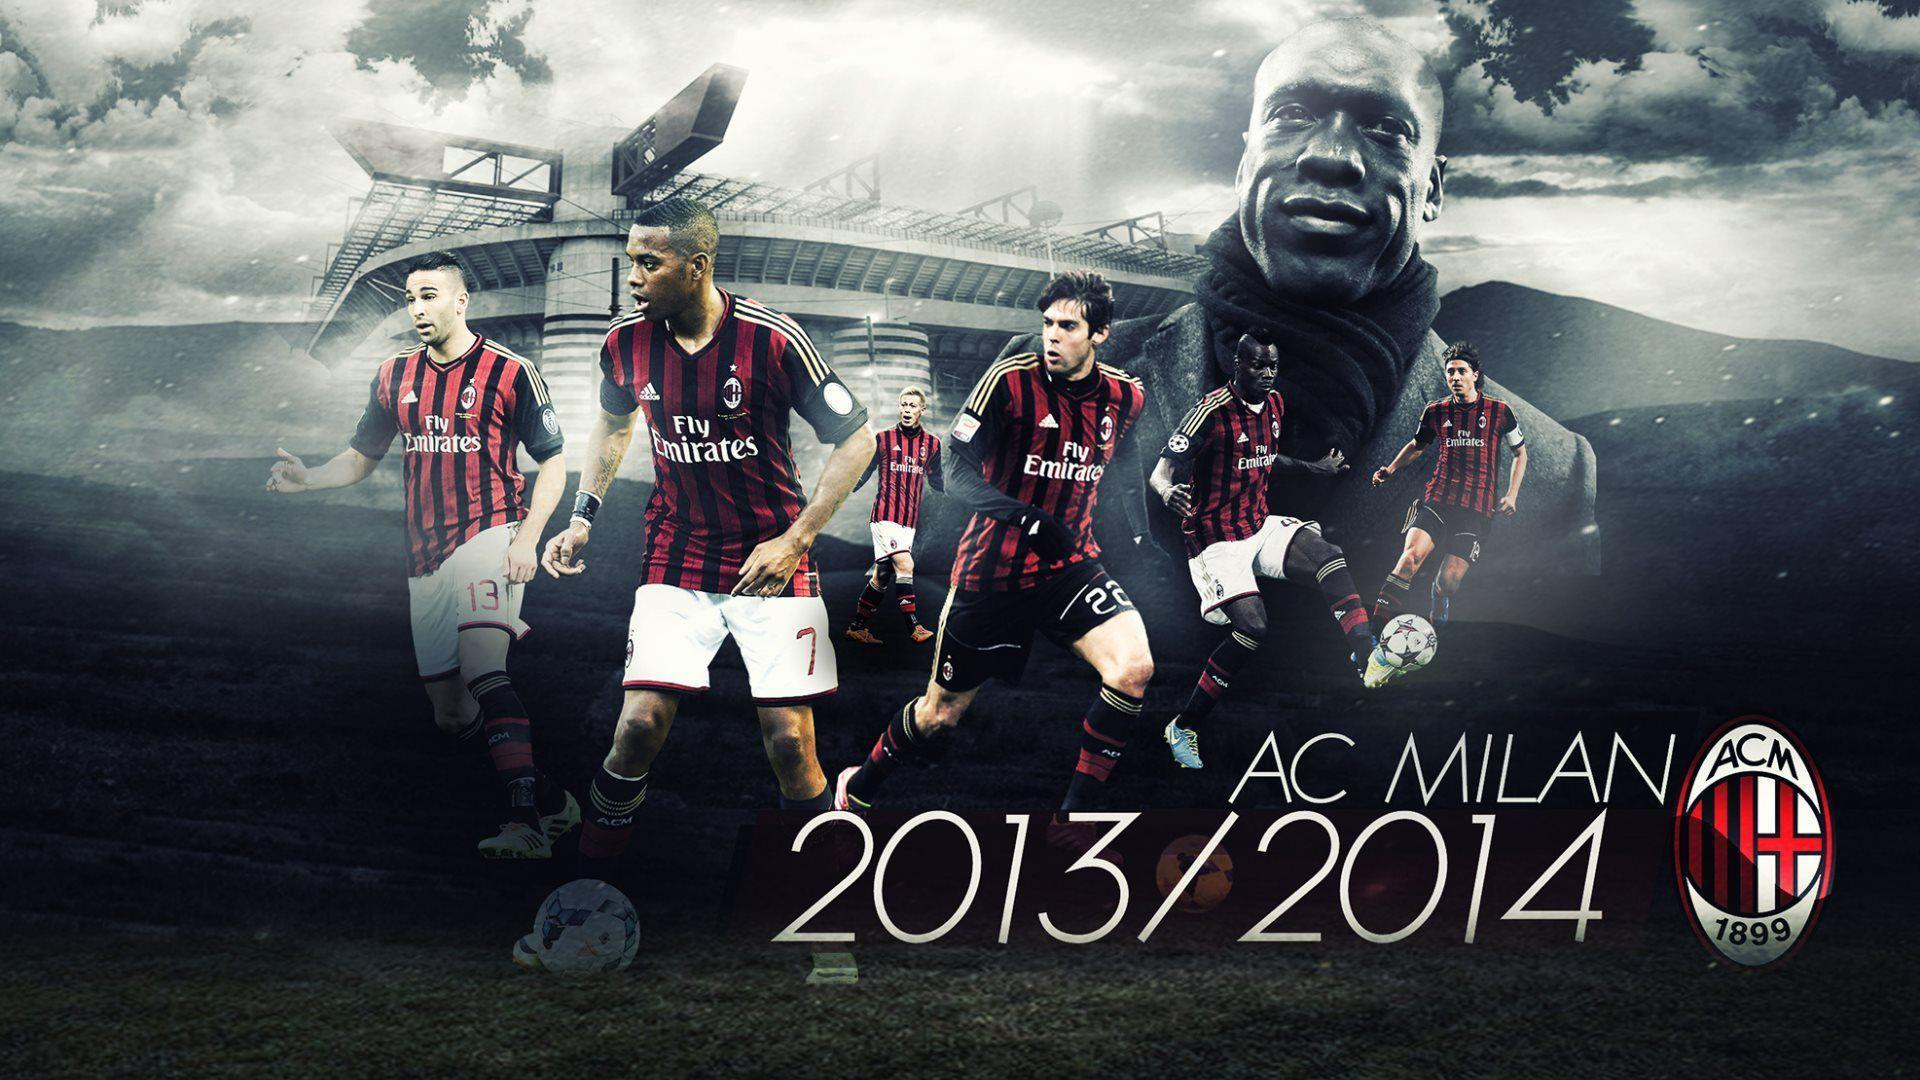 AC Milan 2014 & Manchester United 2014 HD Wallpapers. 4K